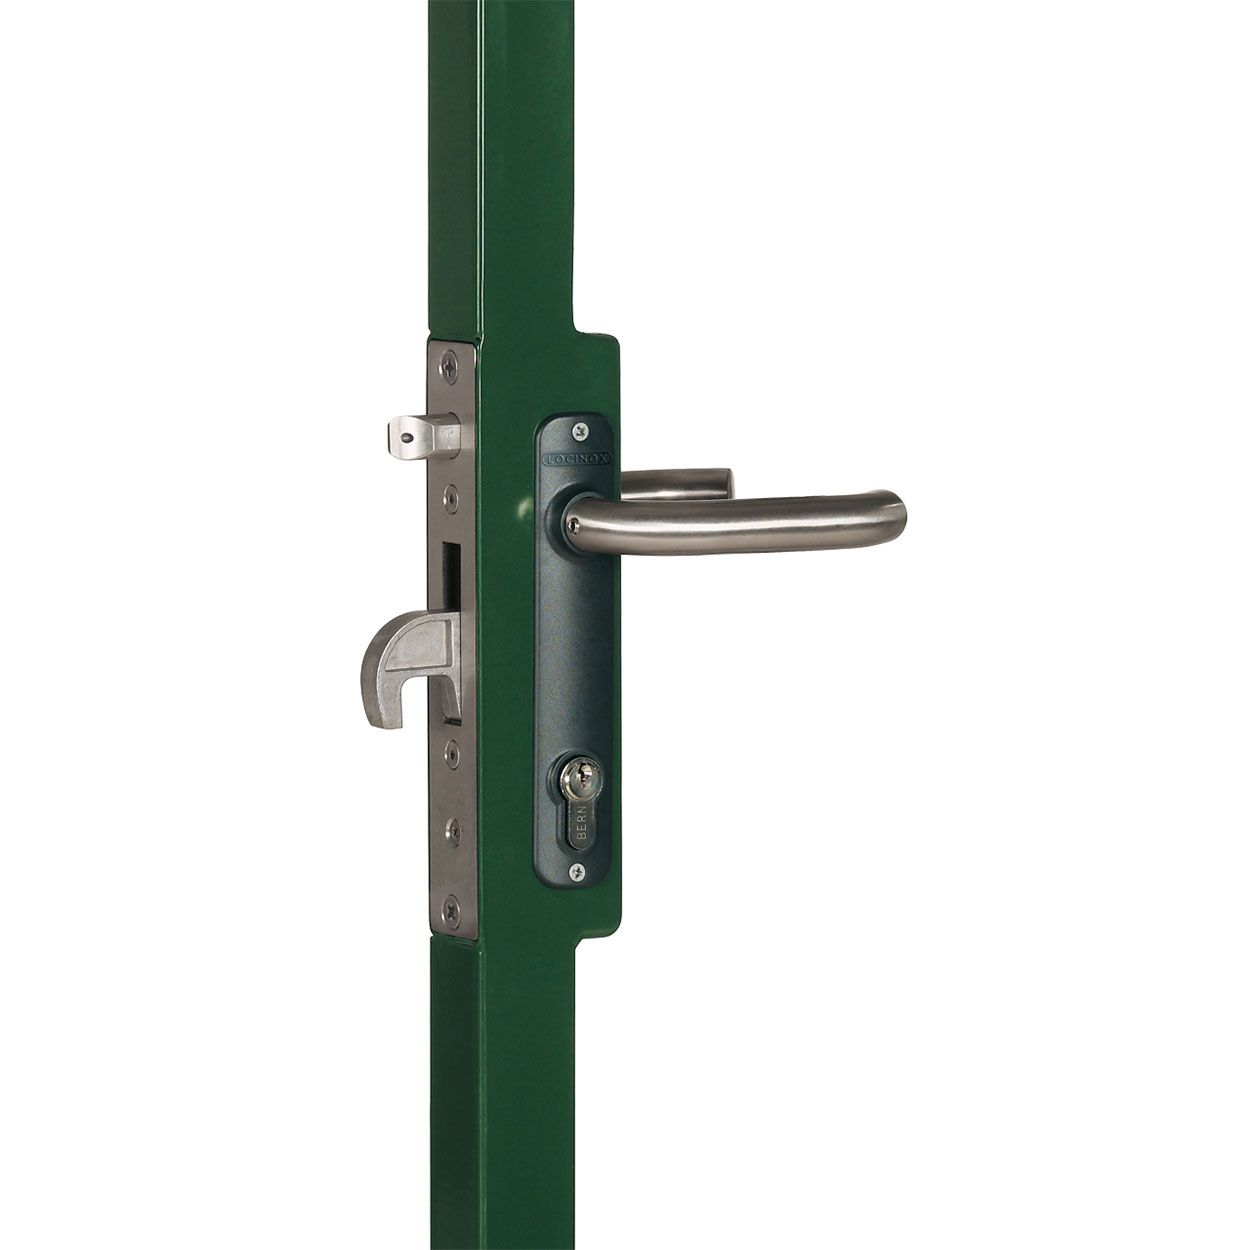 Locinox Hybrid Lock Kit for Ornamental Metal Gates